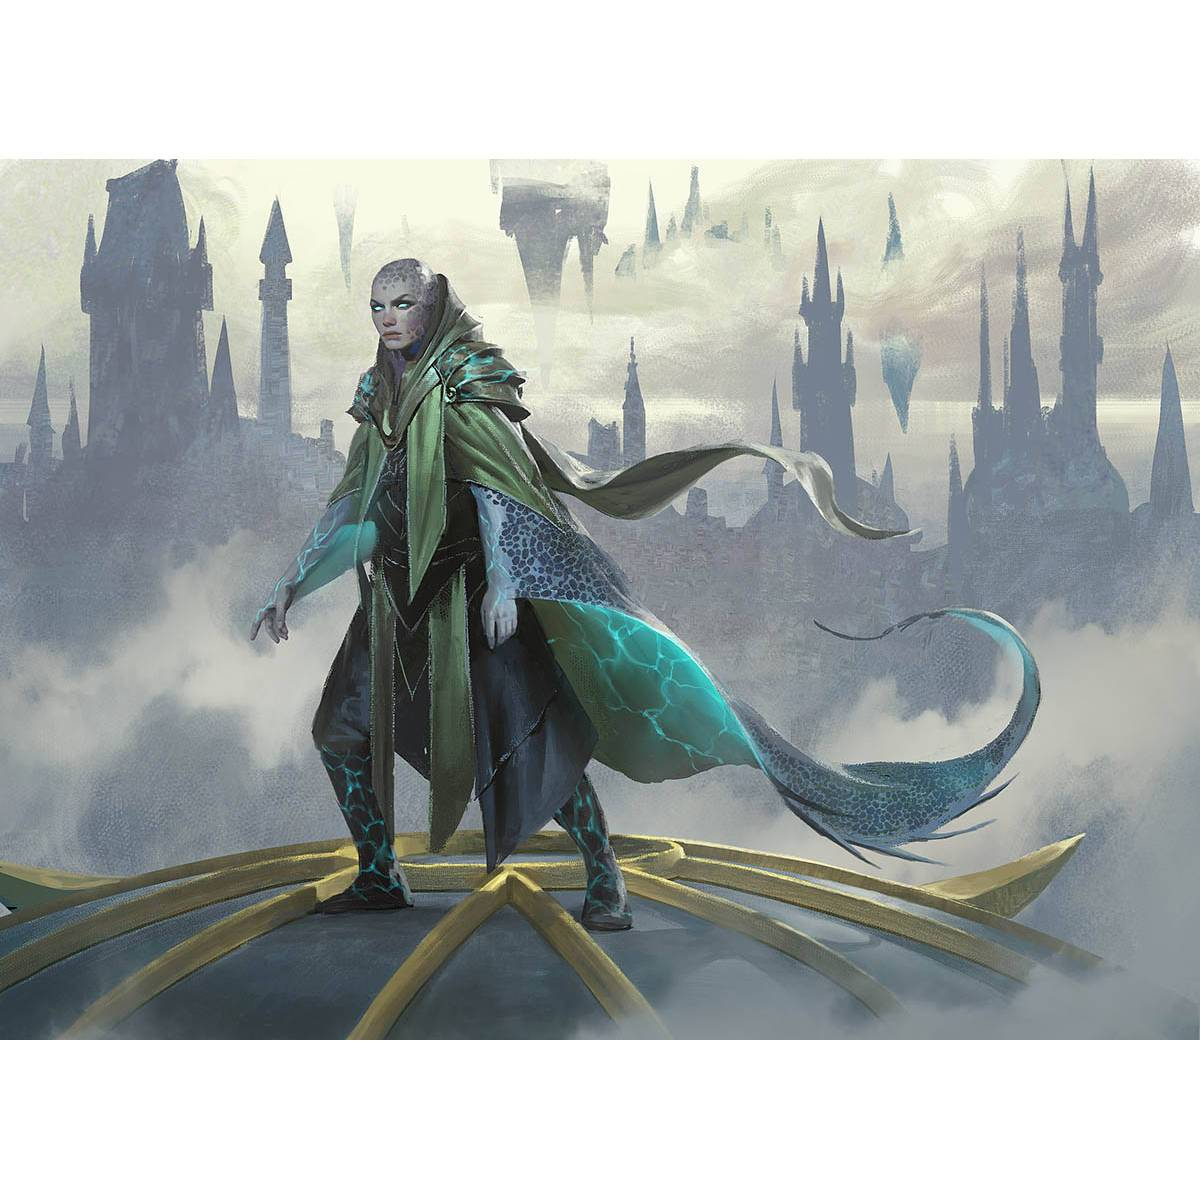 Skatewing Spy Print - Print - Original Magic Art - Accessories for Magic the Gathering and other card games